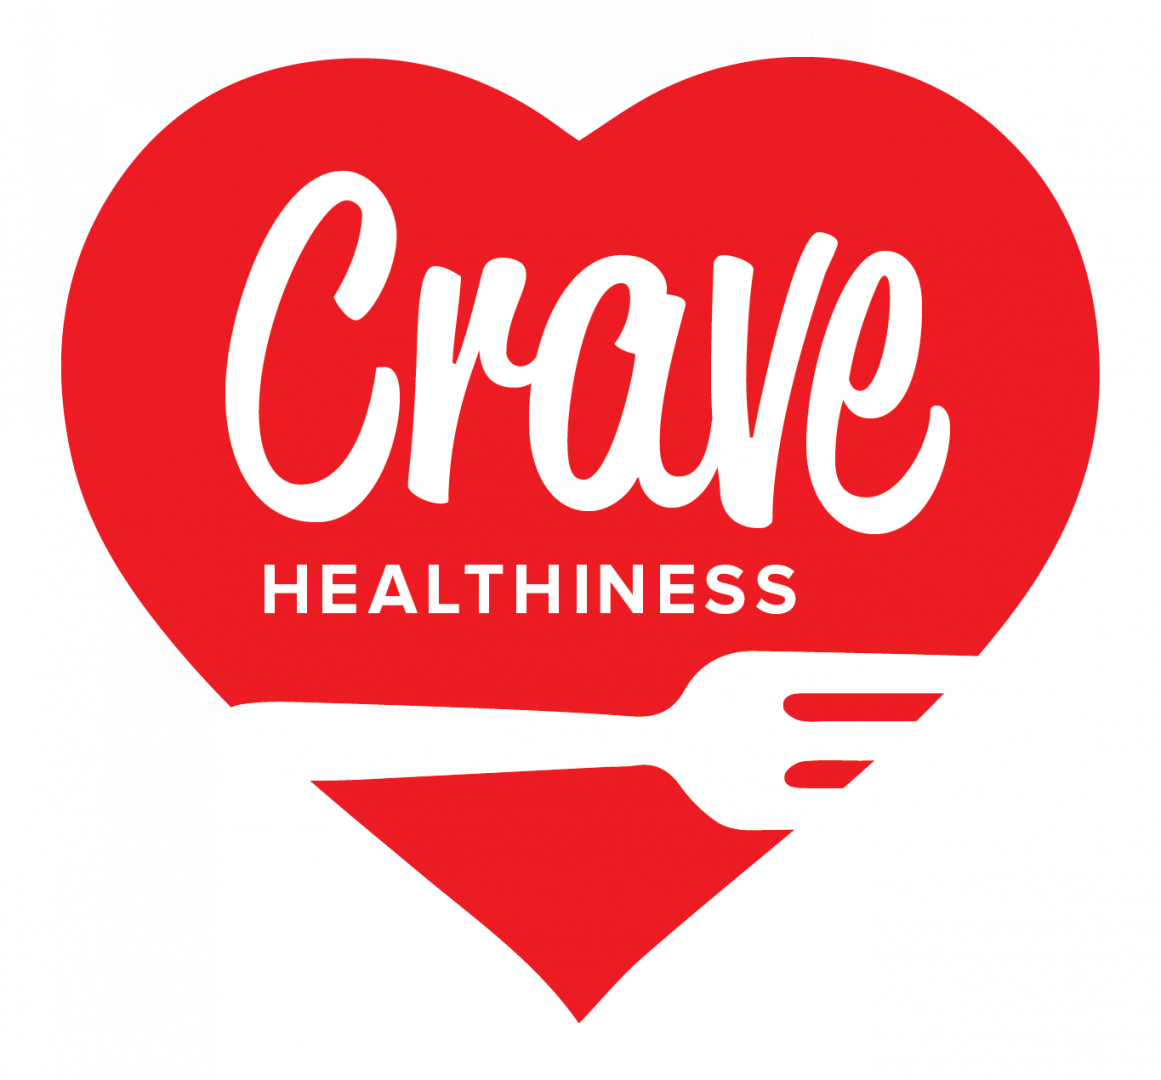 Crave Healthiness